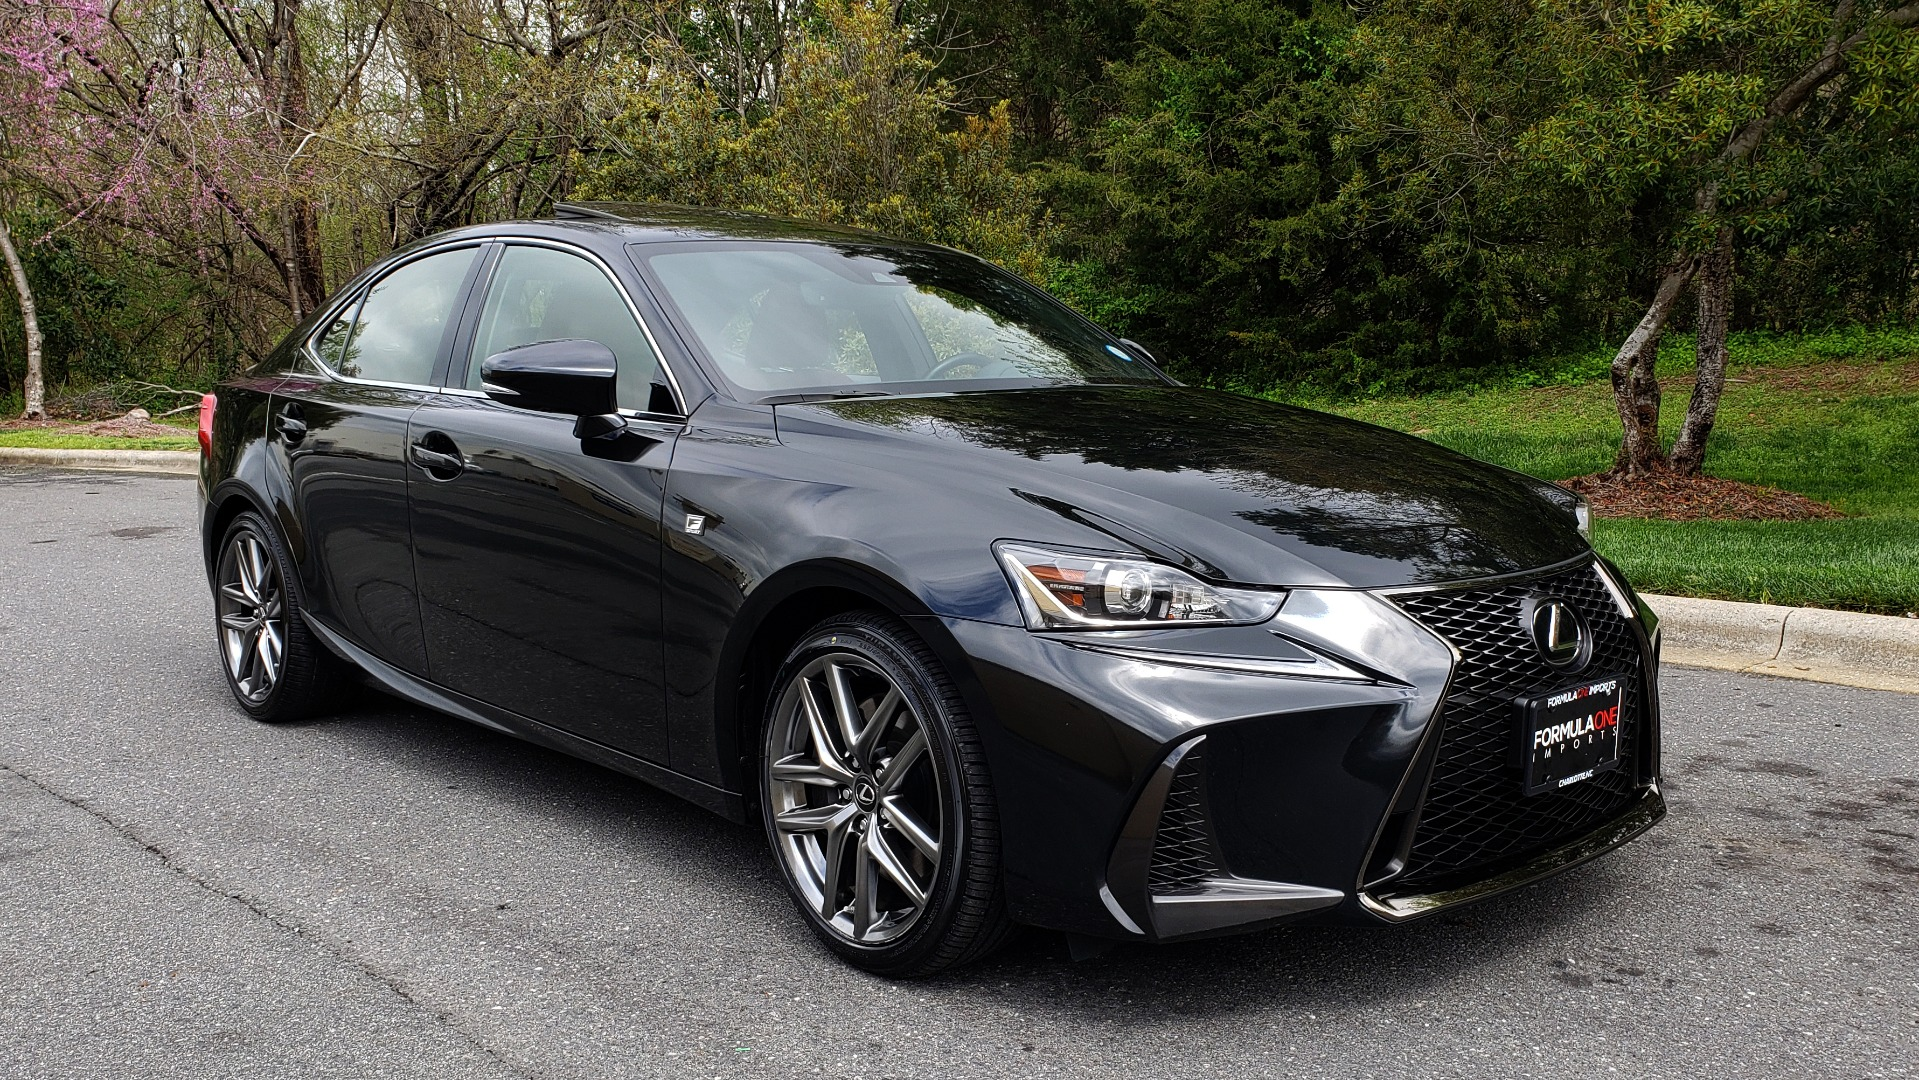 Used 2017 Lexus IS 300 F SPORT AWD / NAV / SUNROOF / REARVIEW / VENT SEATS / BSM for sale Sold at Formula Imports in Charlotte NC 28227 4